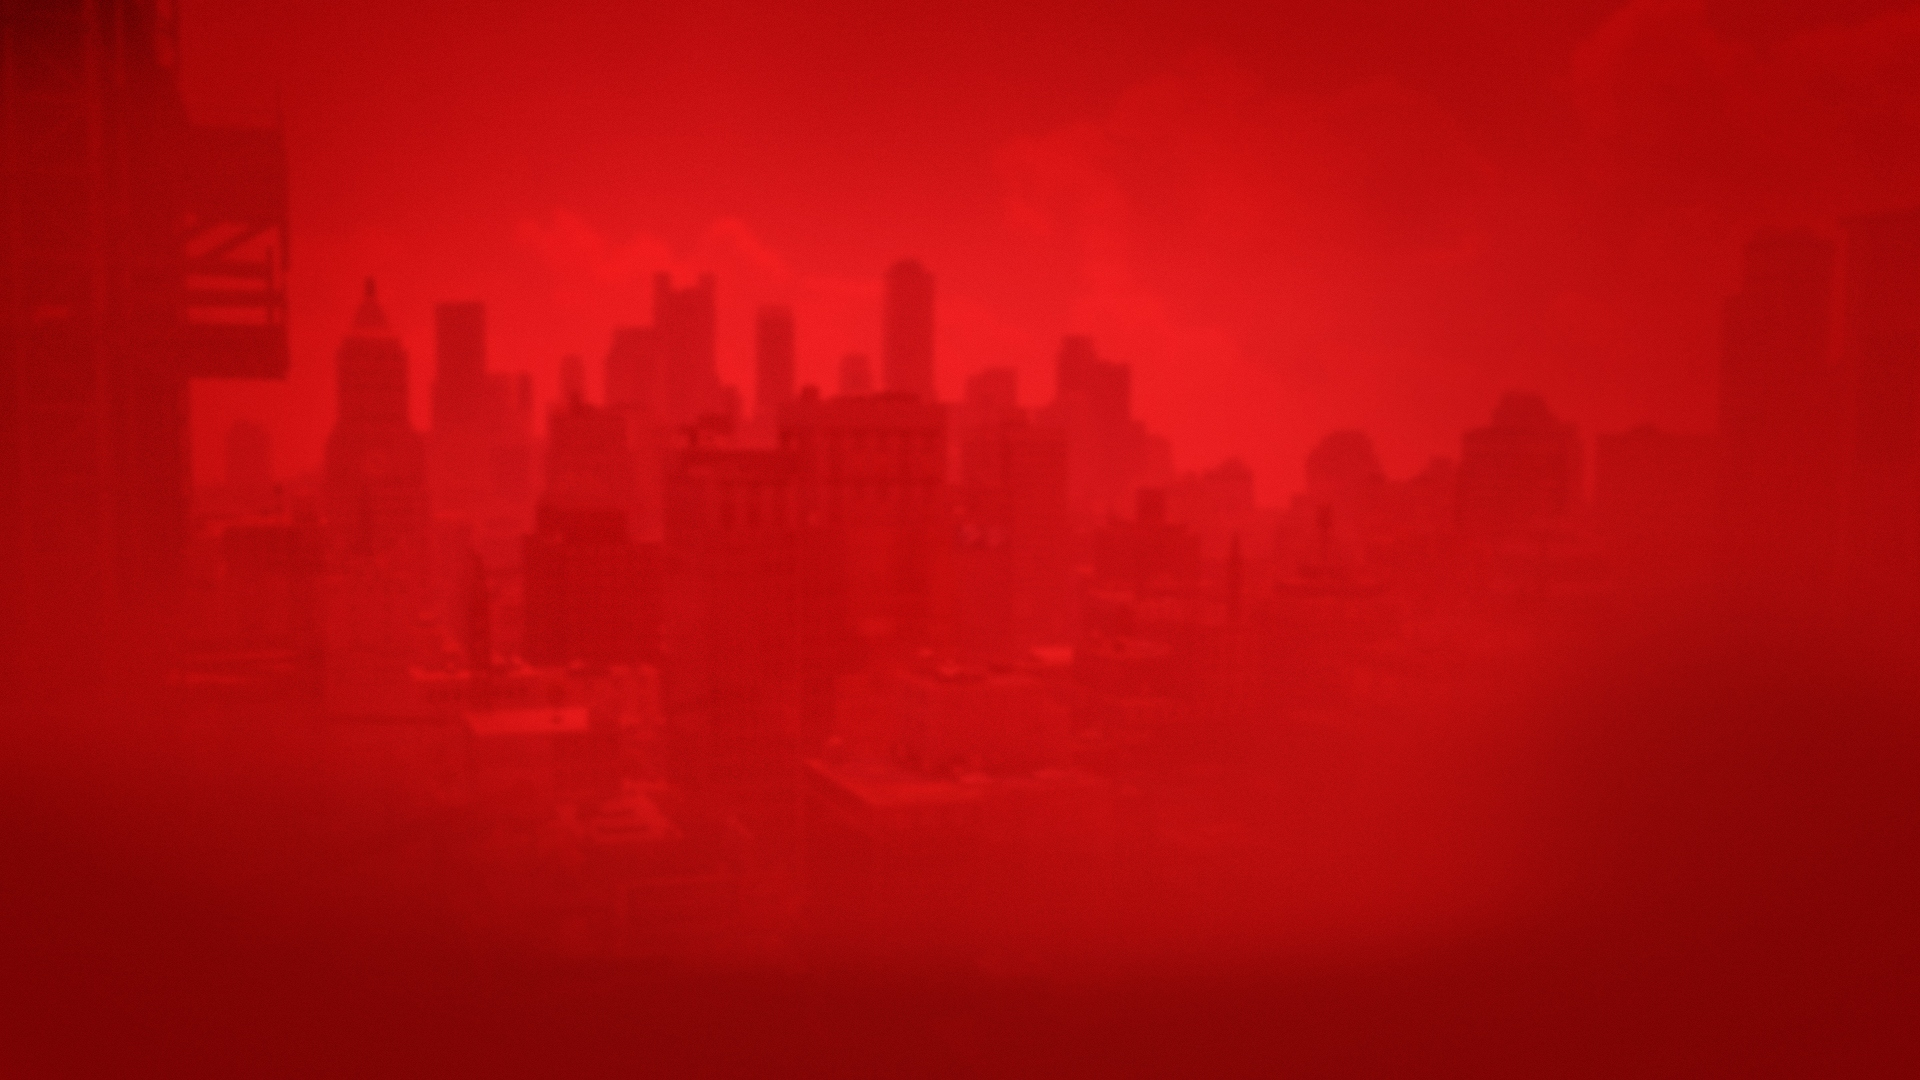 spider-man ps4 background